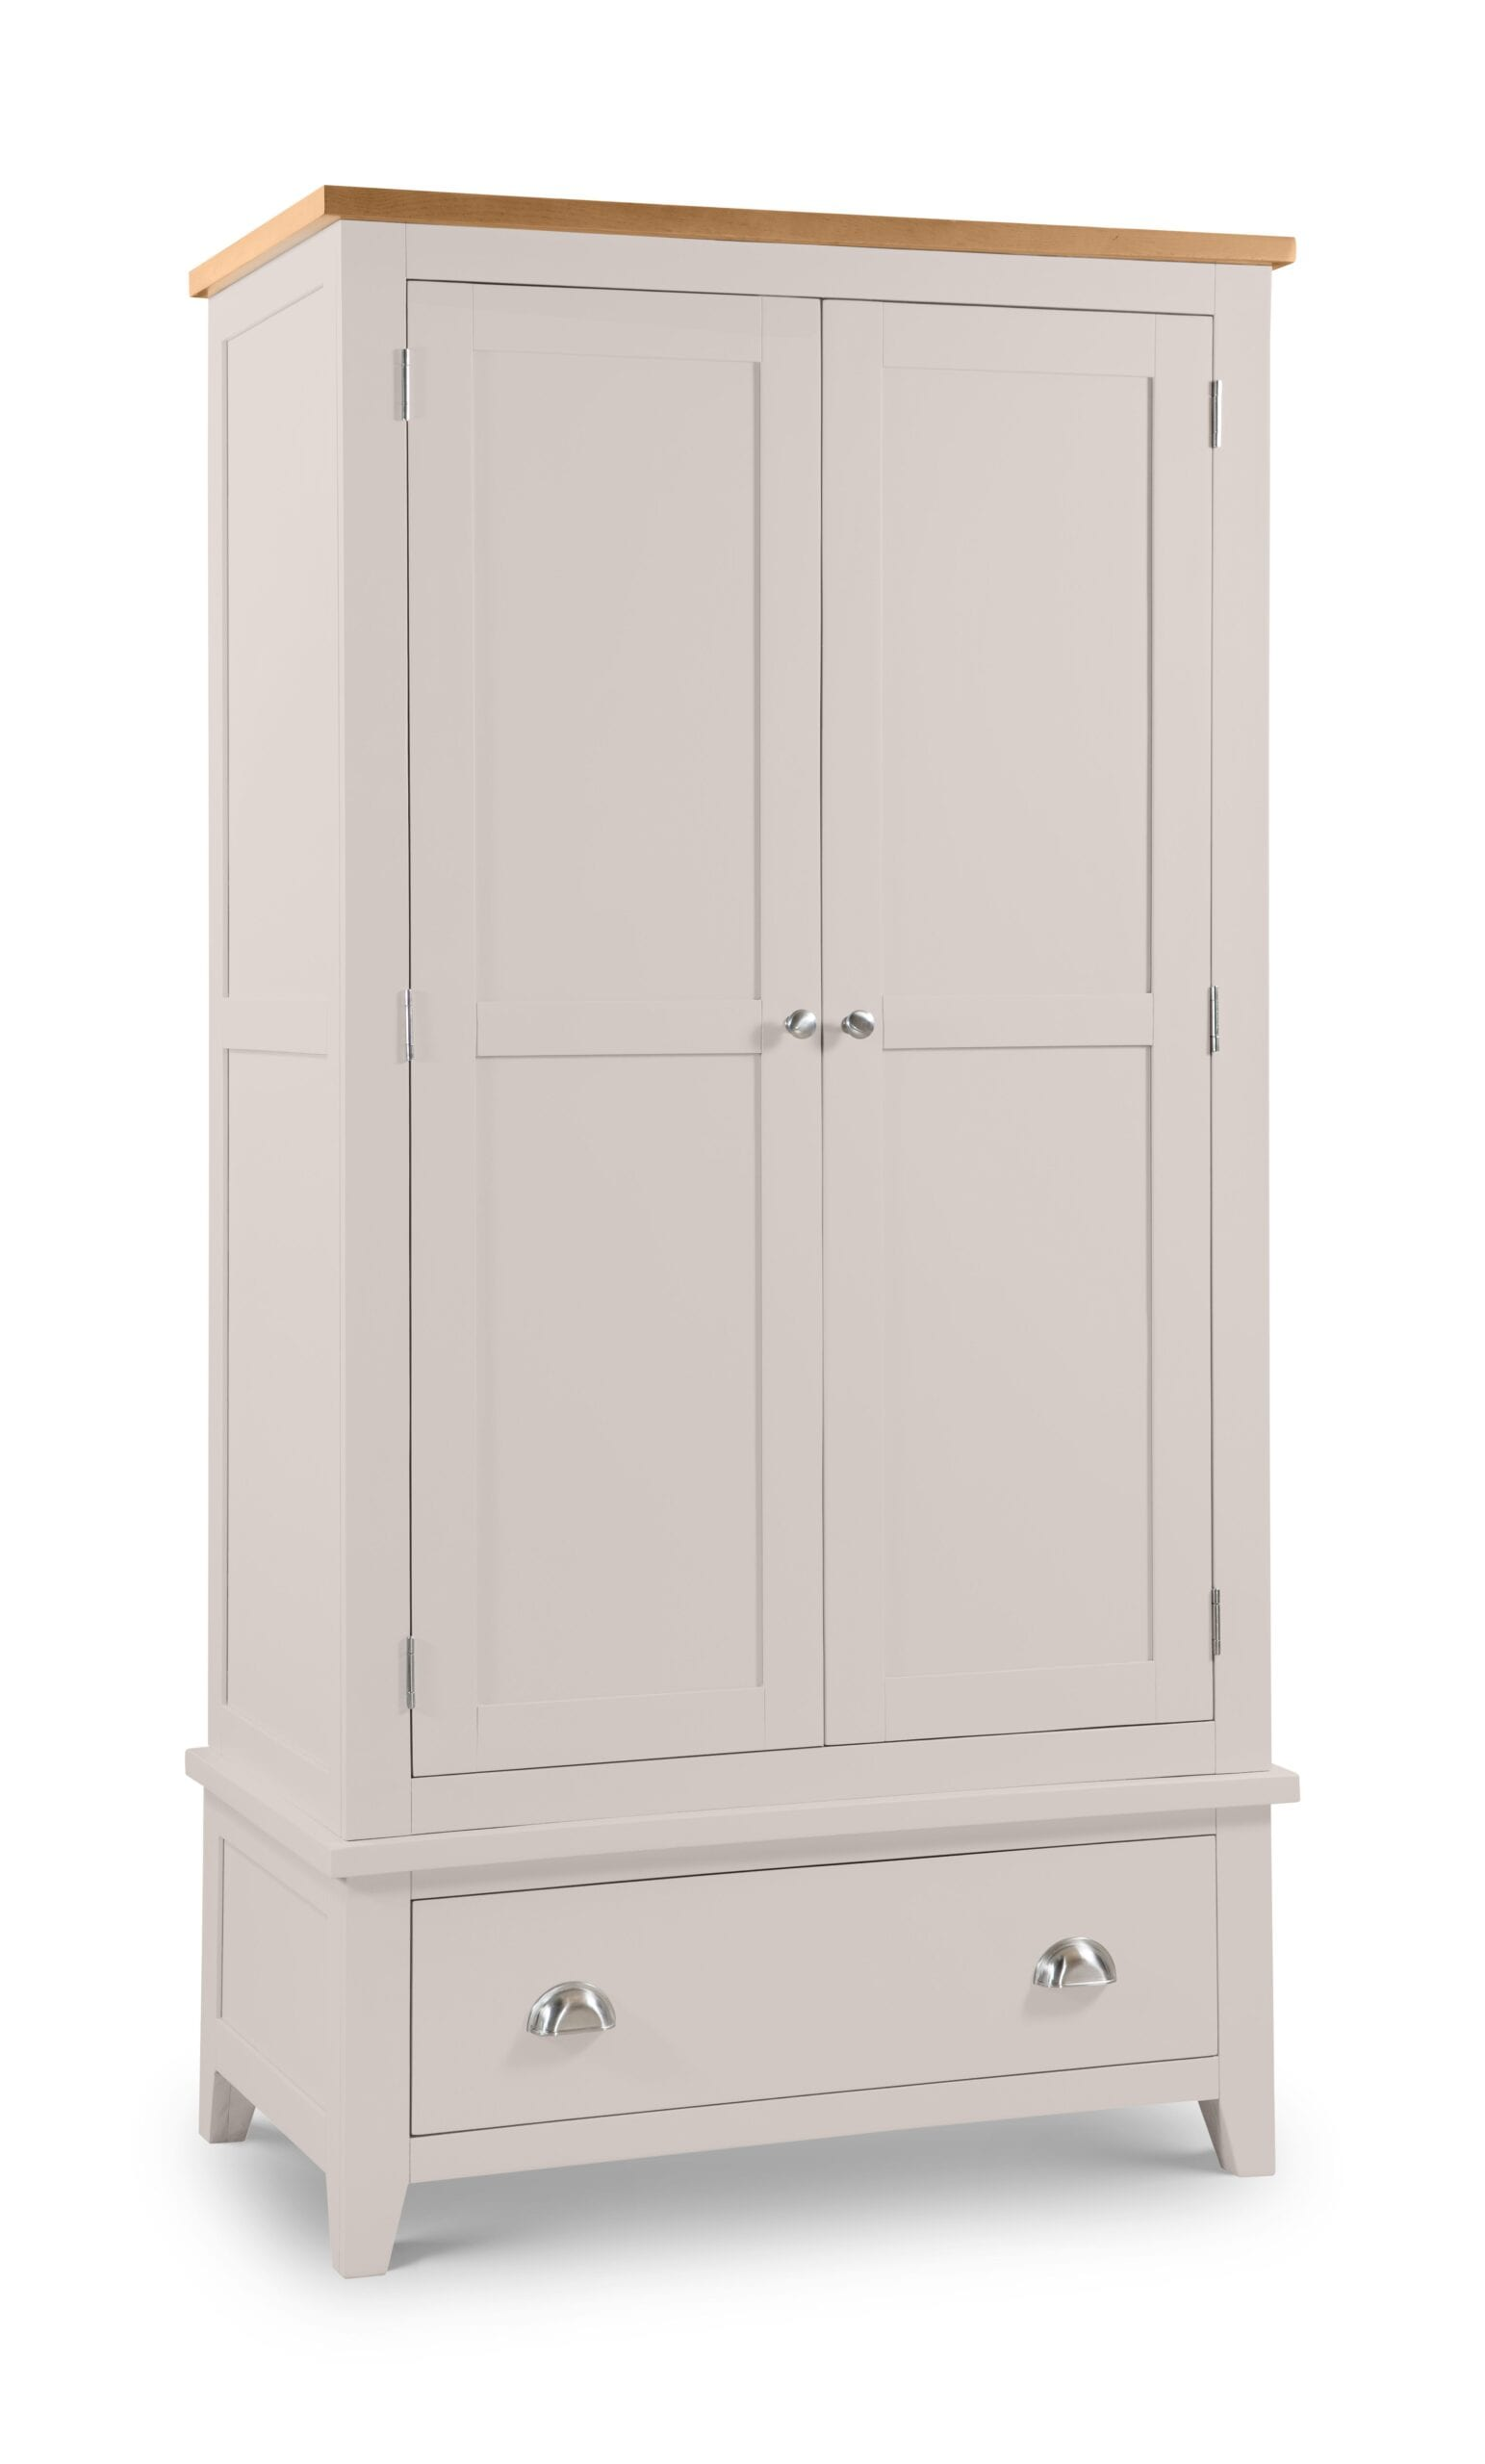 CAVALIER NEW 2 DOOR COMBINATION WARDROBE